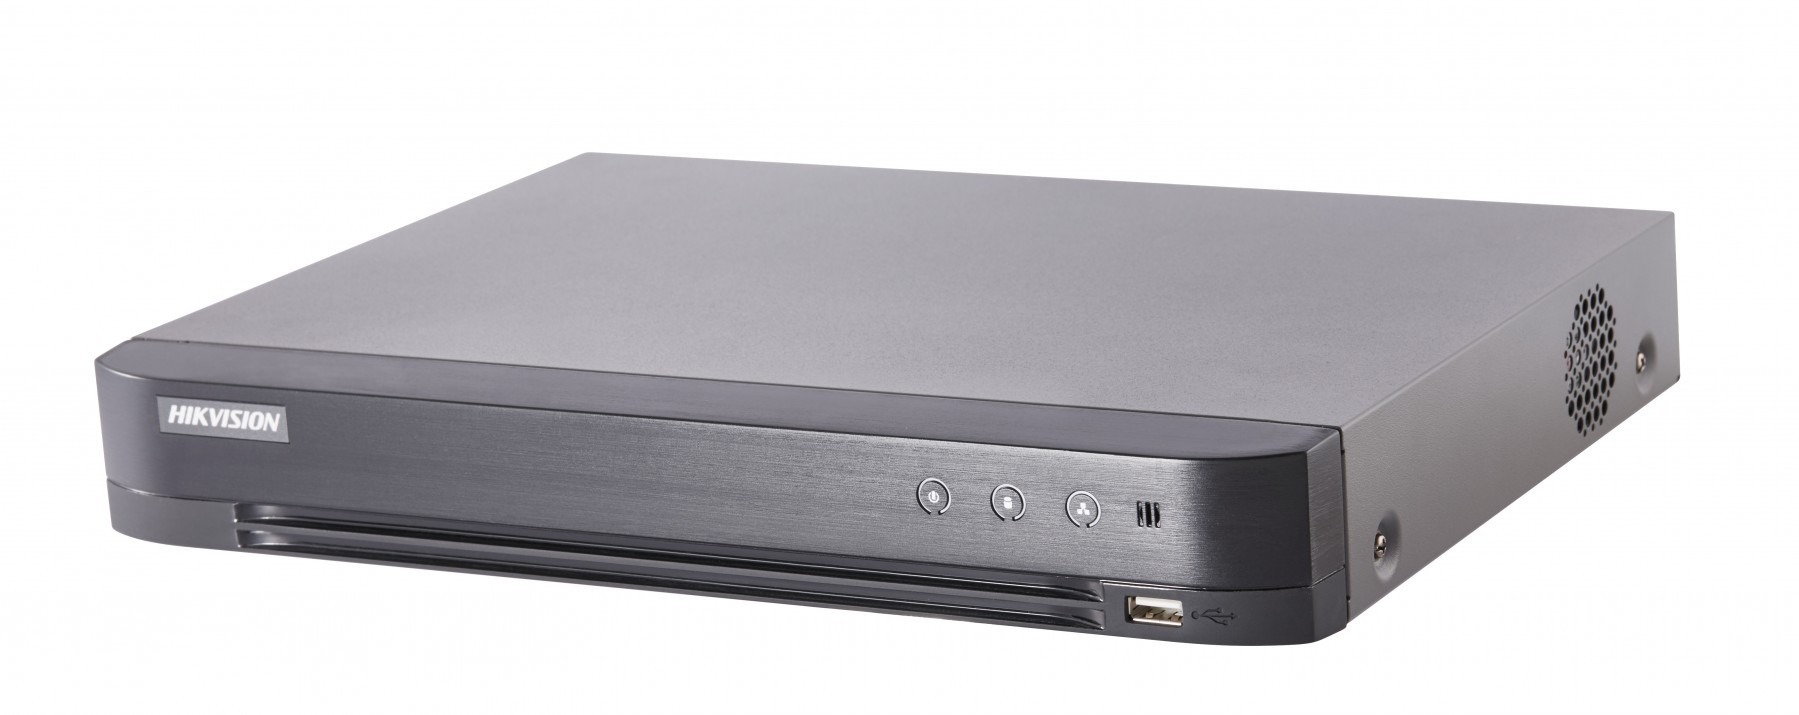 Hikvision IDS-7204HUHI-K1/4S(B) 4 Channel 5MP 2nd Generation AcuSense Turbo HD DVR